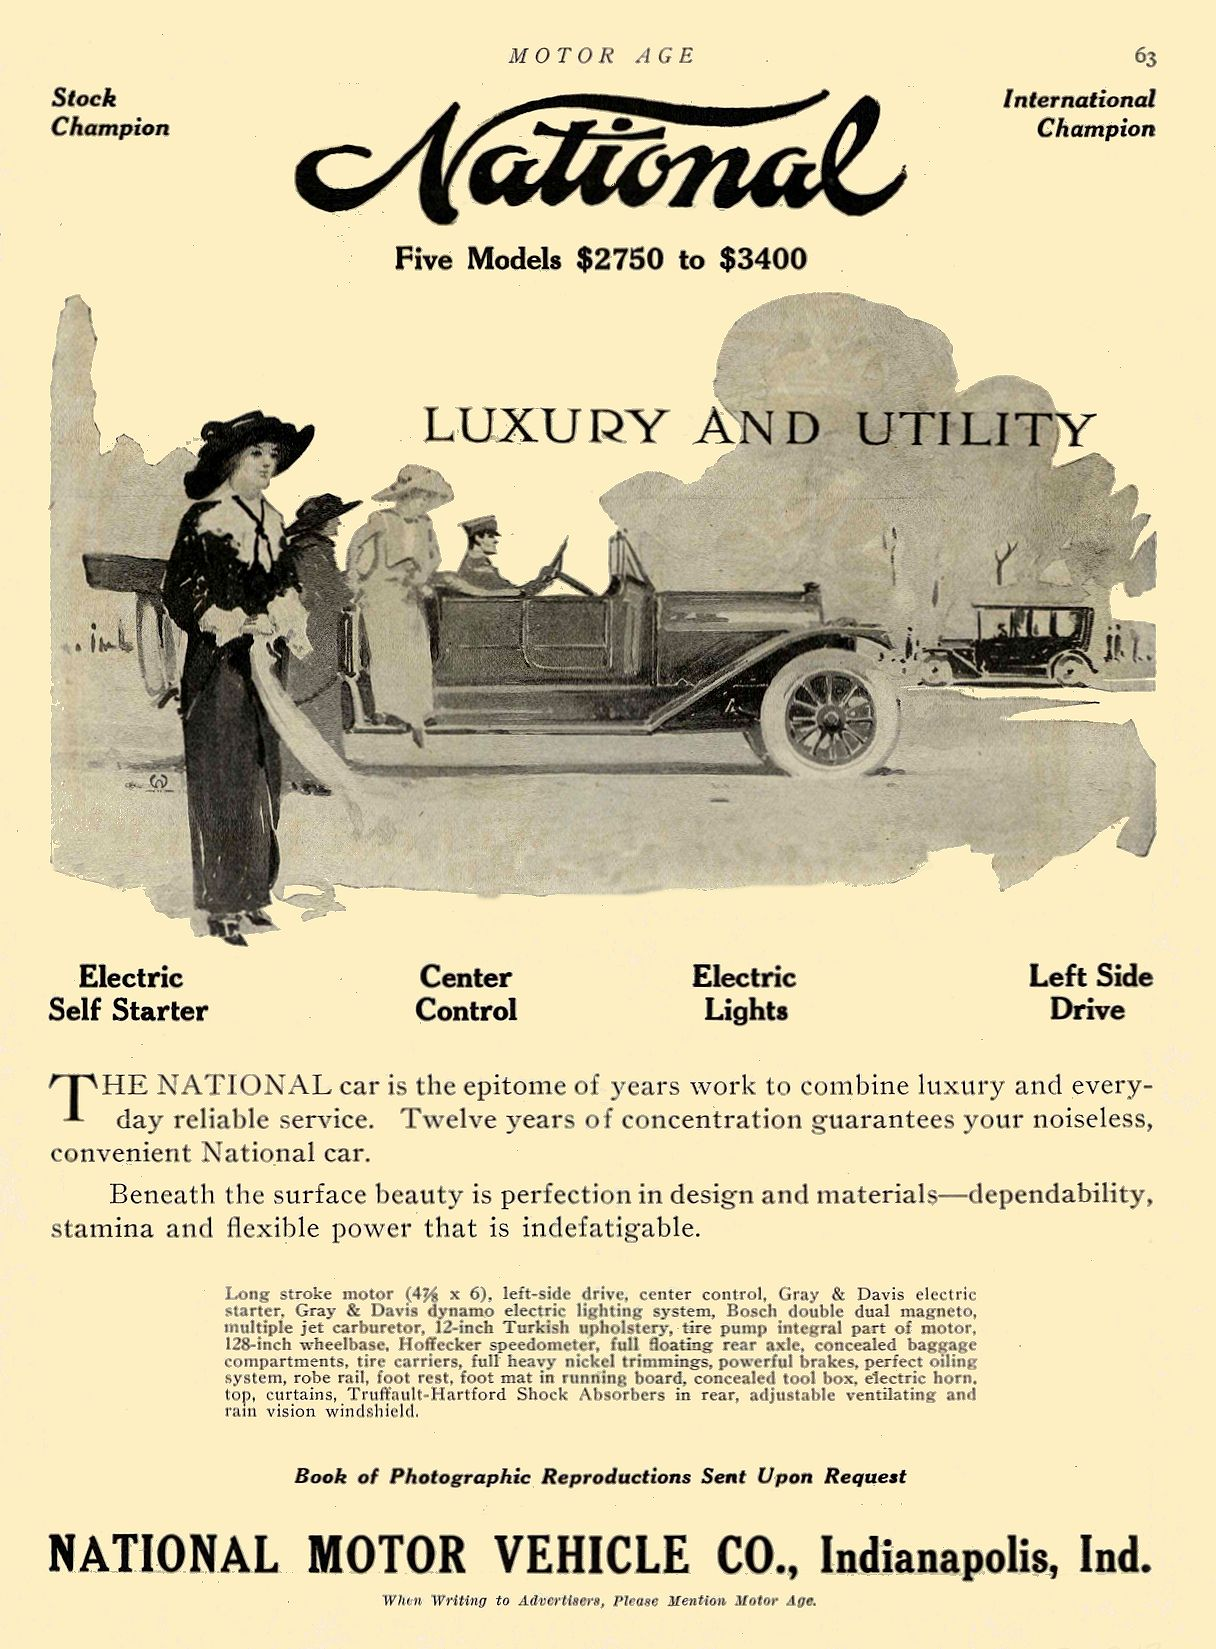 1913 3 13 NATIONAL National $2750 to $3400 LUXURY AND UTILITY NATIONAL MOTOR VEHICLE CO. Indianapolis, IND MOTOR AGE March 13, 1913 8.5″x12″ page 63